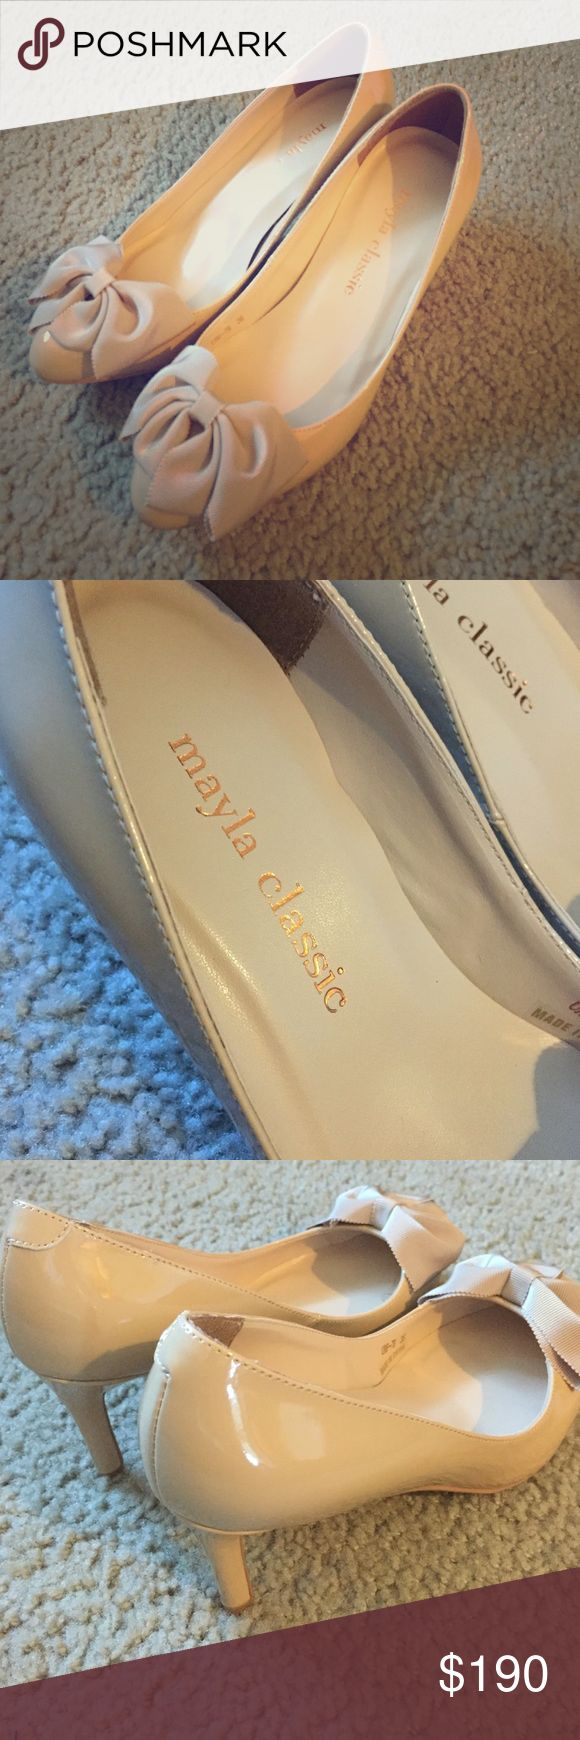 Mayla Classic brand new high heel Bought it from Japan online, Never worn before. Friendly for size 6.5. Still keep bag for the shoes. mayla classic Shoes Heels